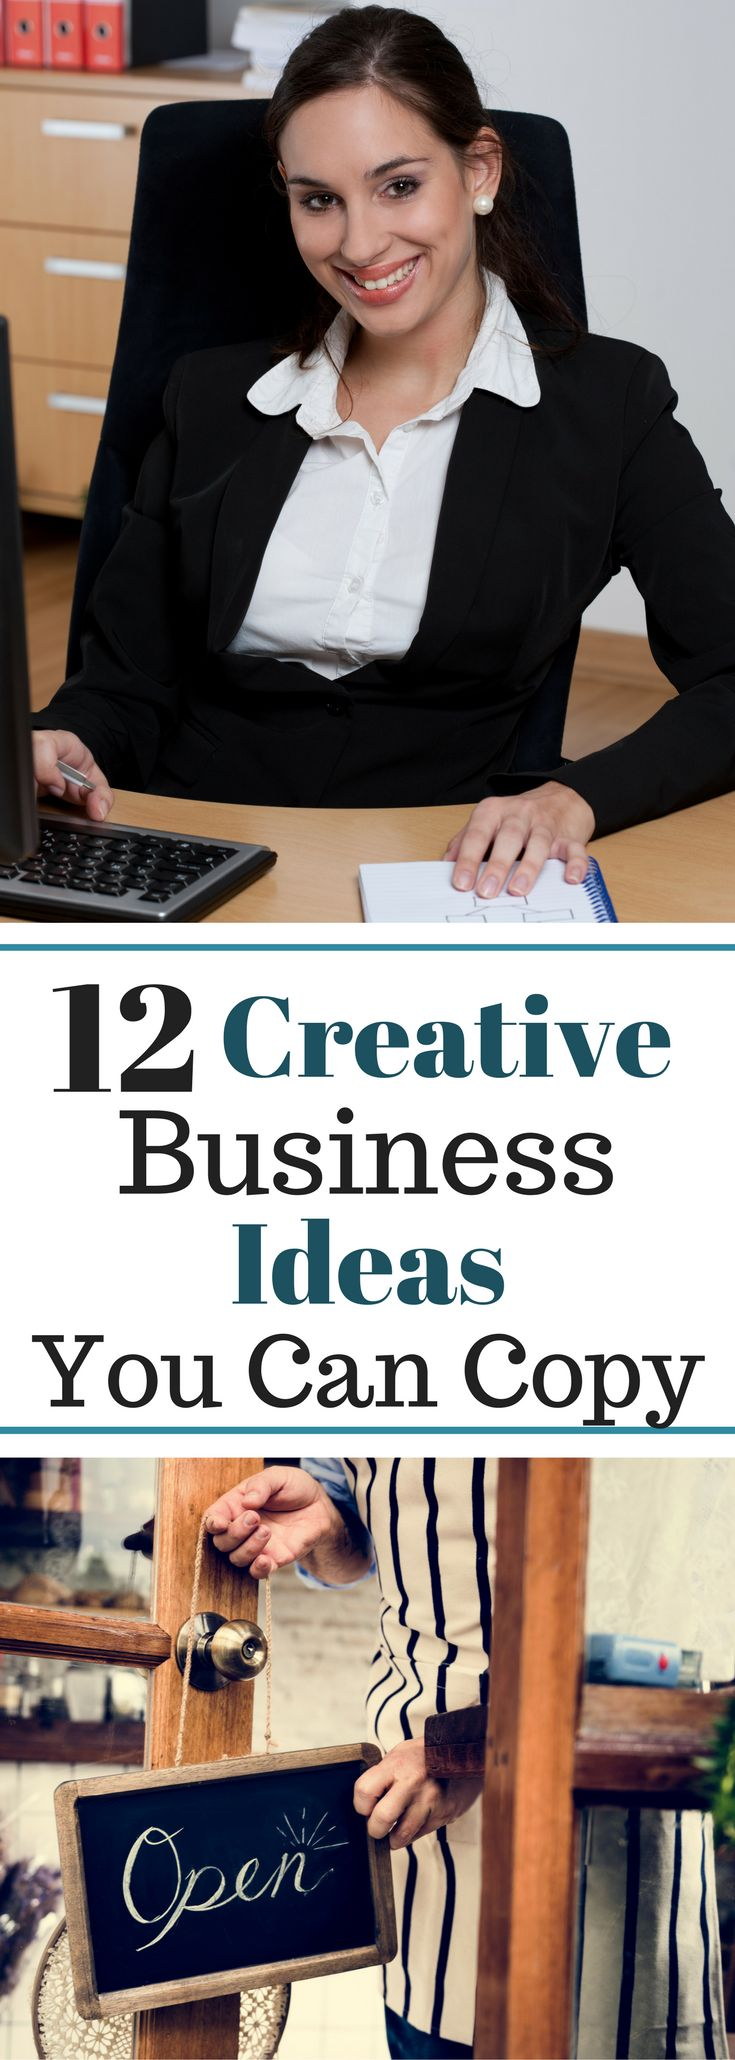 12 Creative Business Ideas You Can Copy - Start your business TODAY!